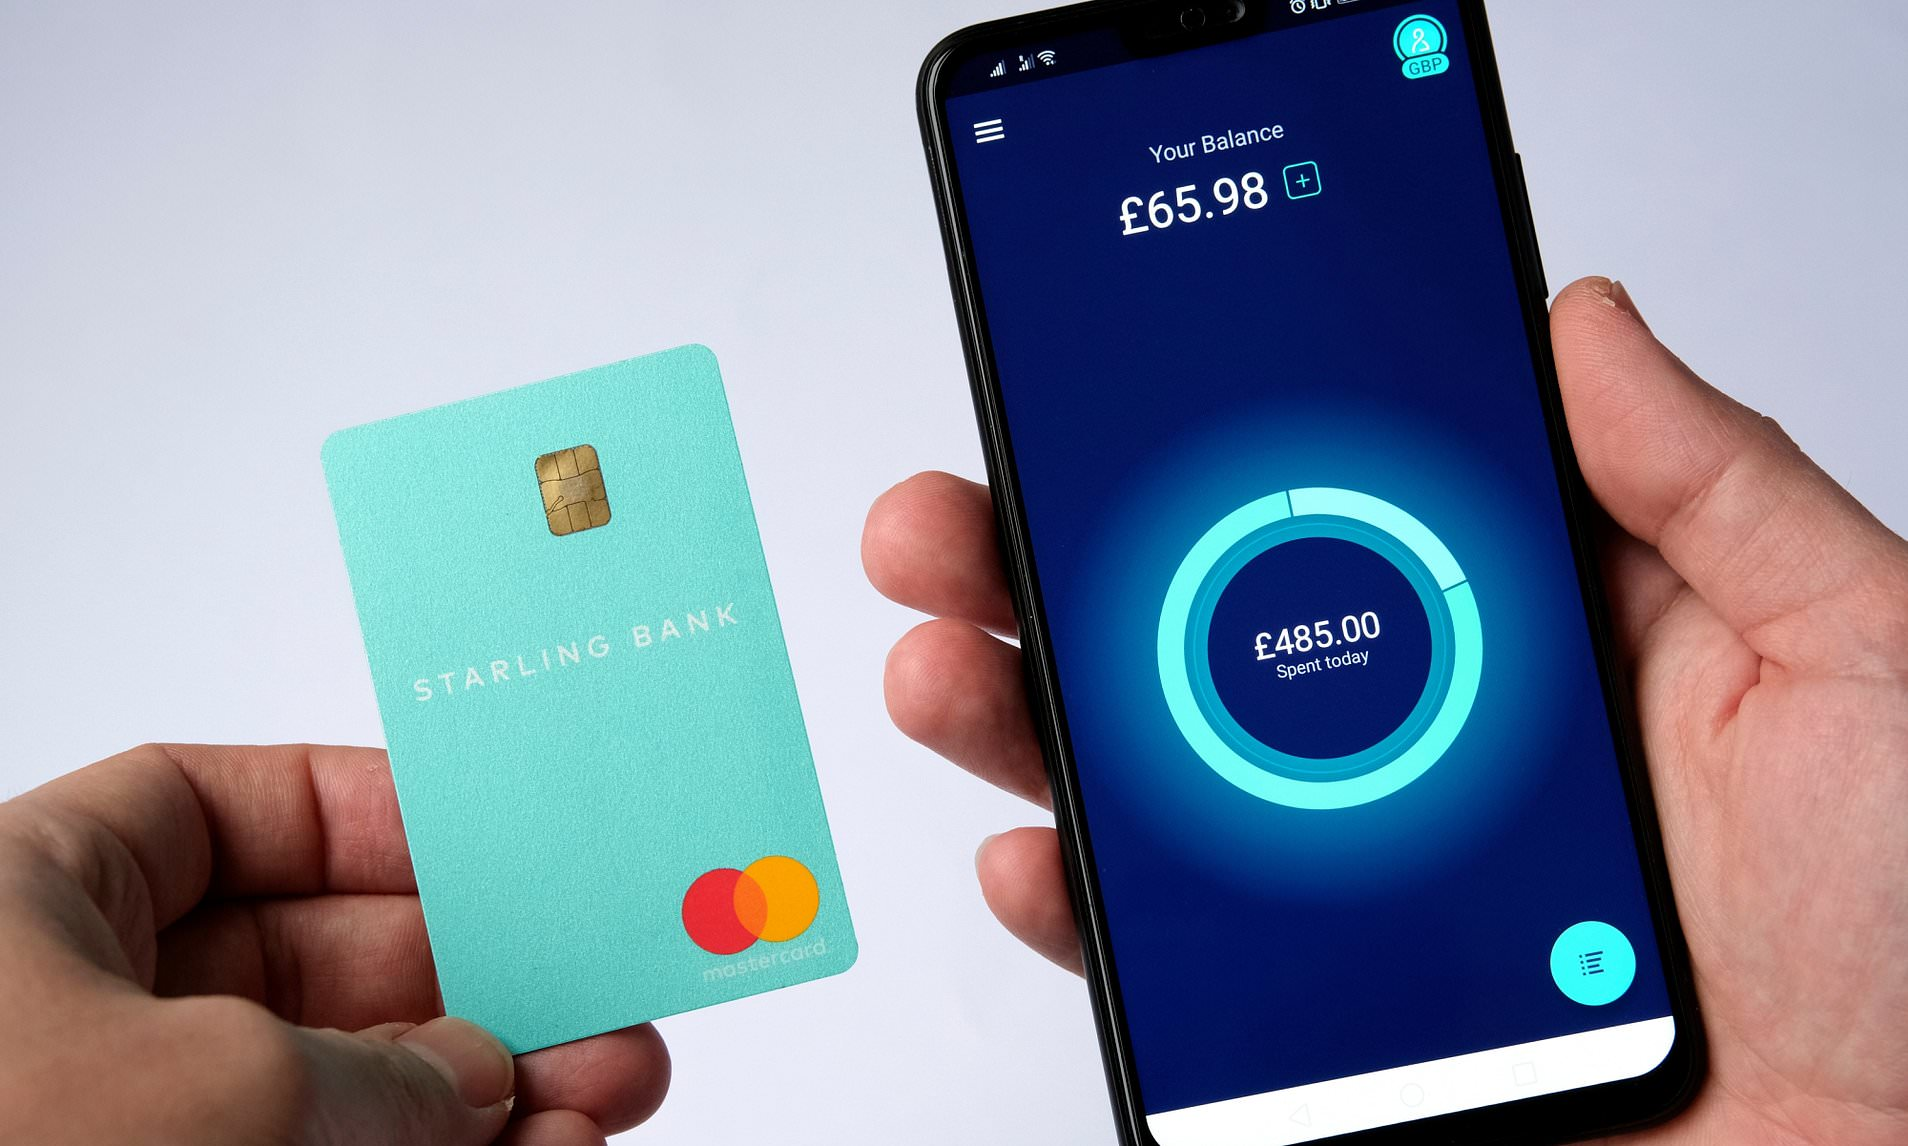 Starling Bank Referral Code